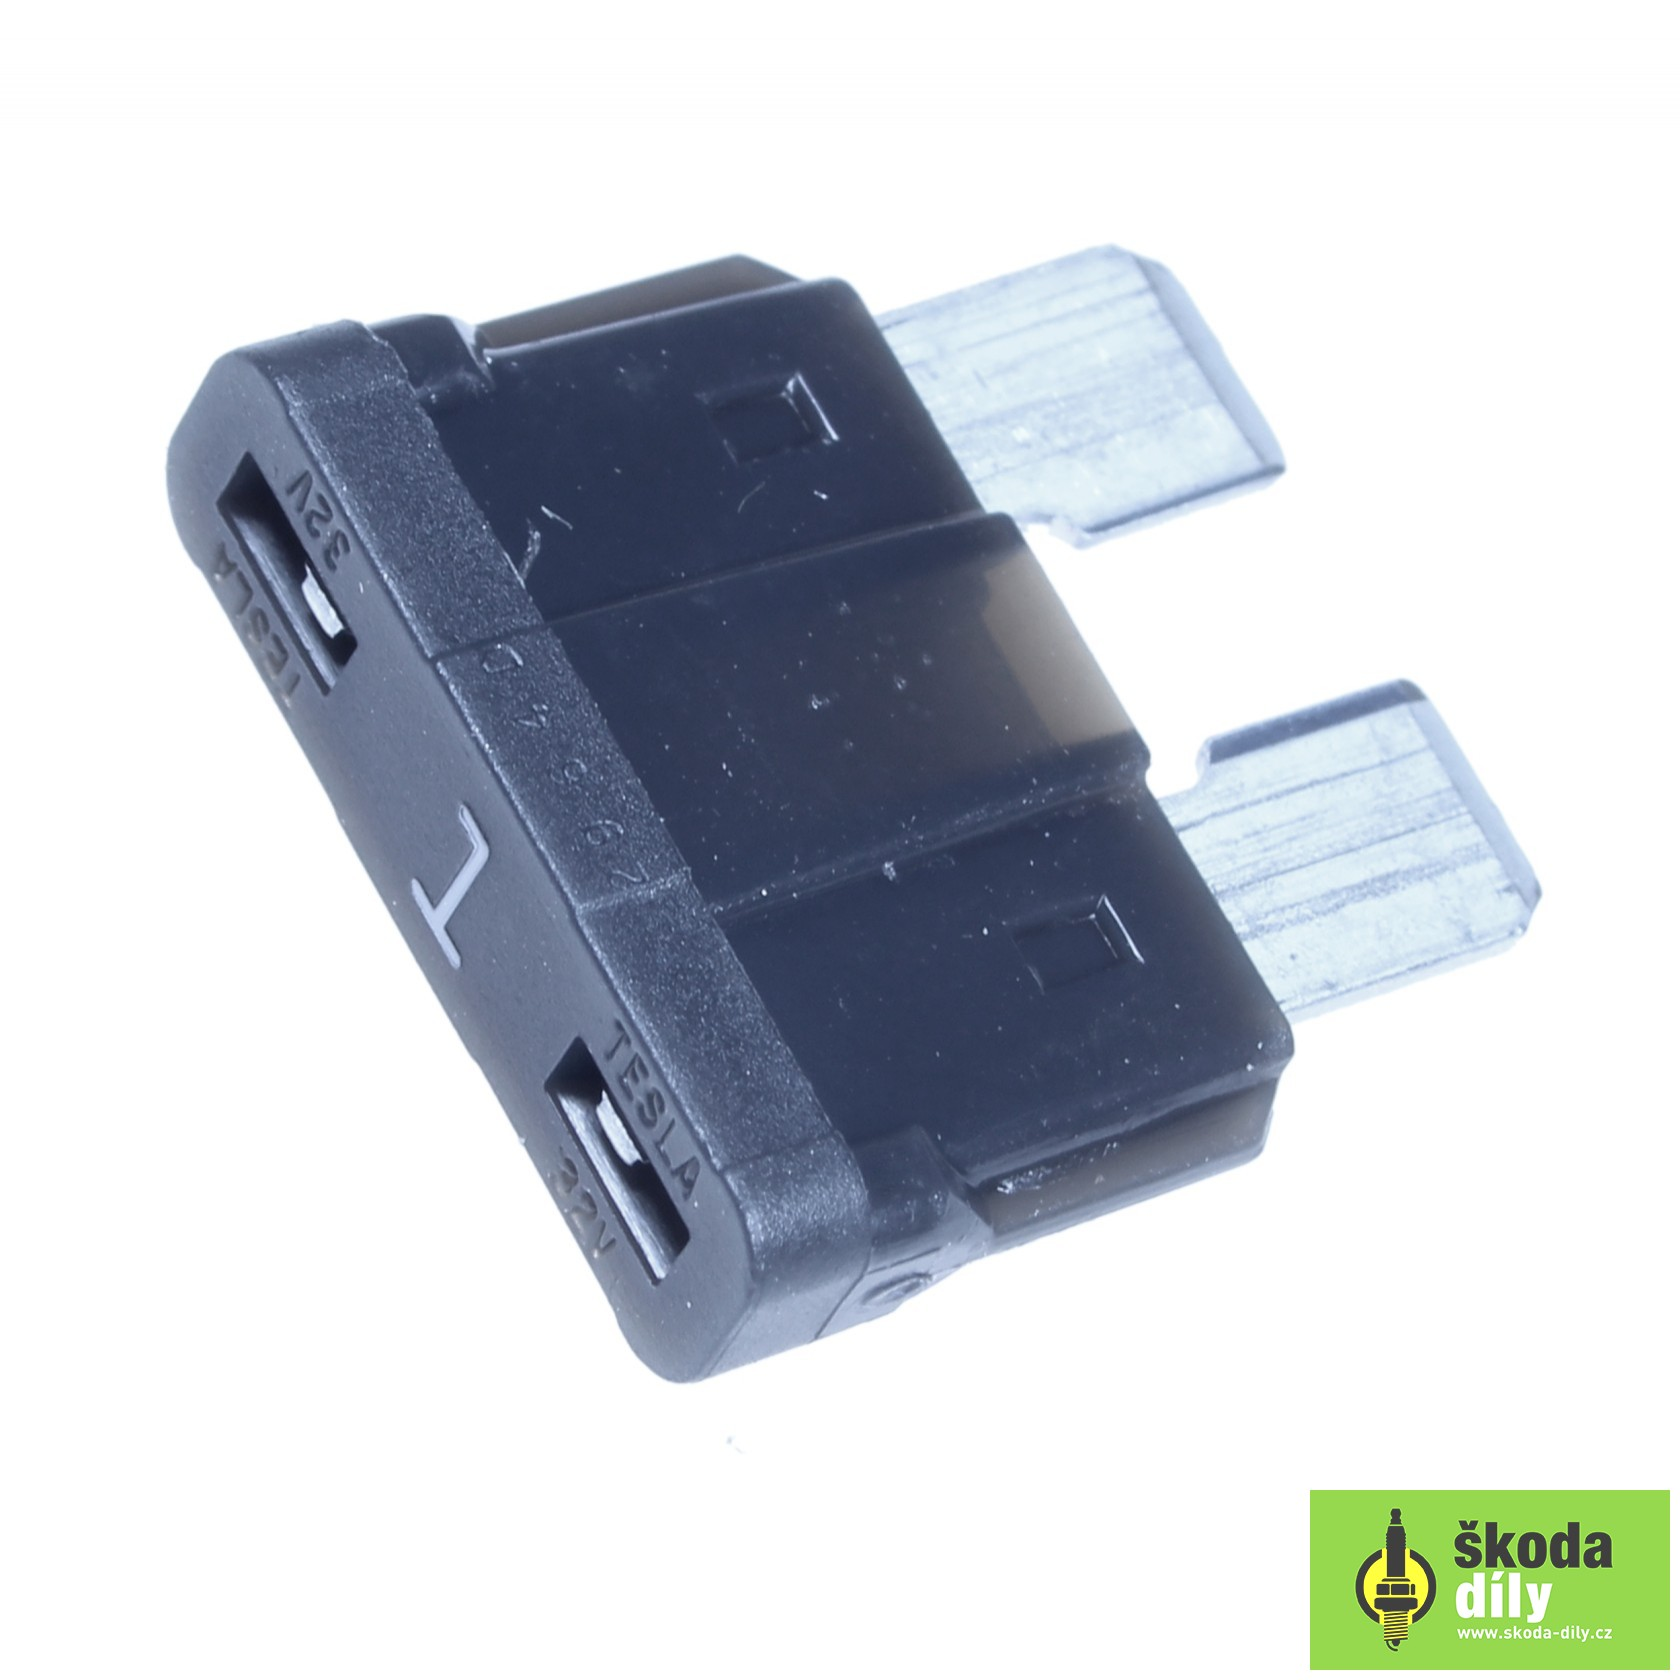 Flat Fuse 1a Czech Republic Oe Producer N01713119 Skoda Rapid Box